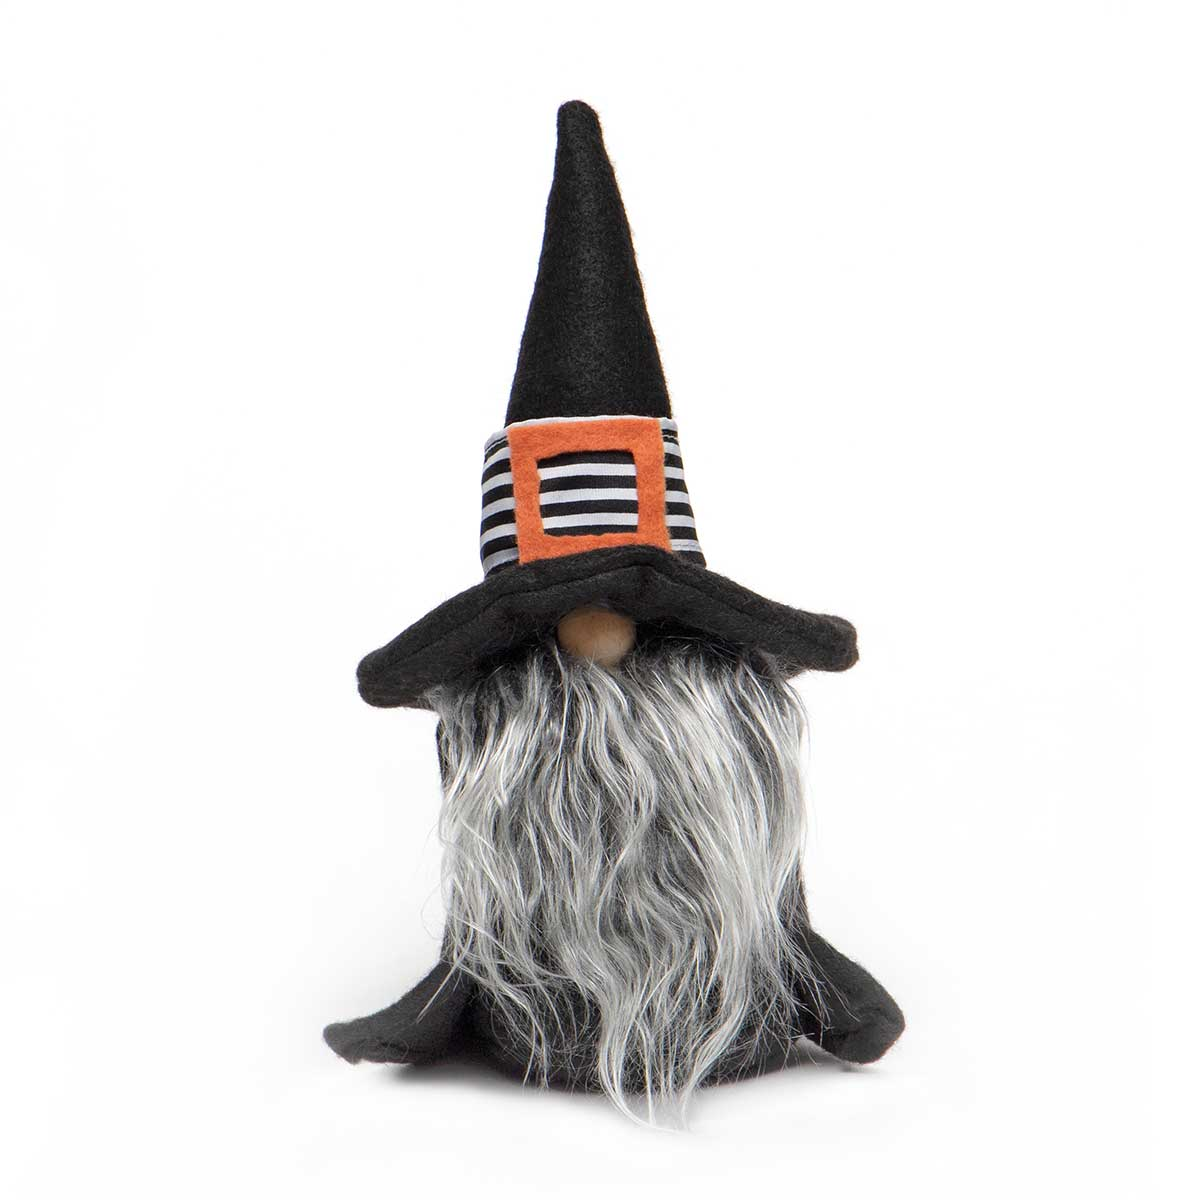 WILMA WITCH GNOME BLACK/WHITE WITH WOOD NOSE, GREY